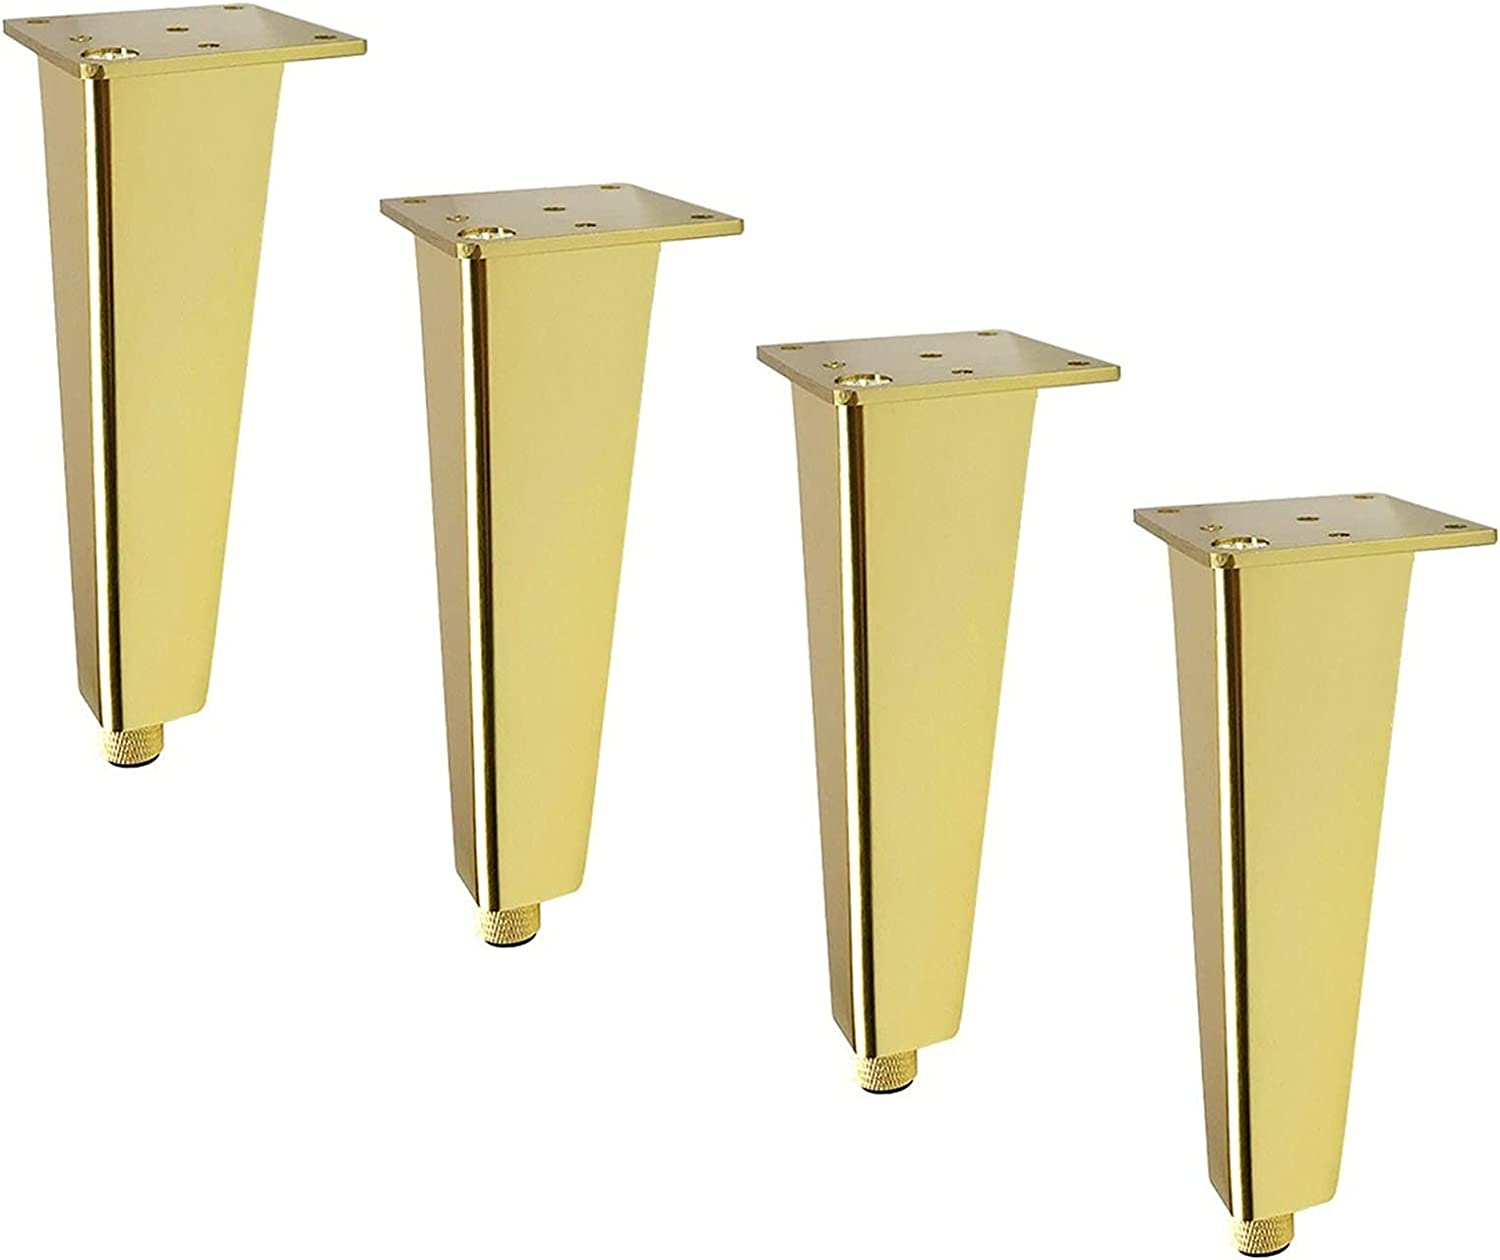 4pcs Special price Metal Furniture Legs Wardrobe Support Home P Don't miss the campaign for Feet DIY